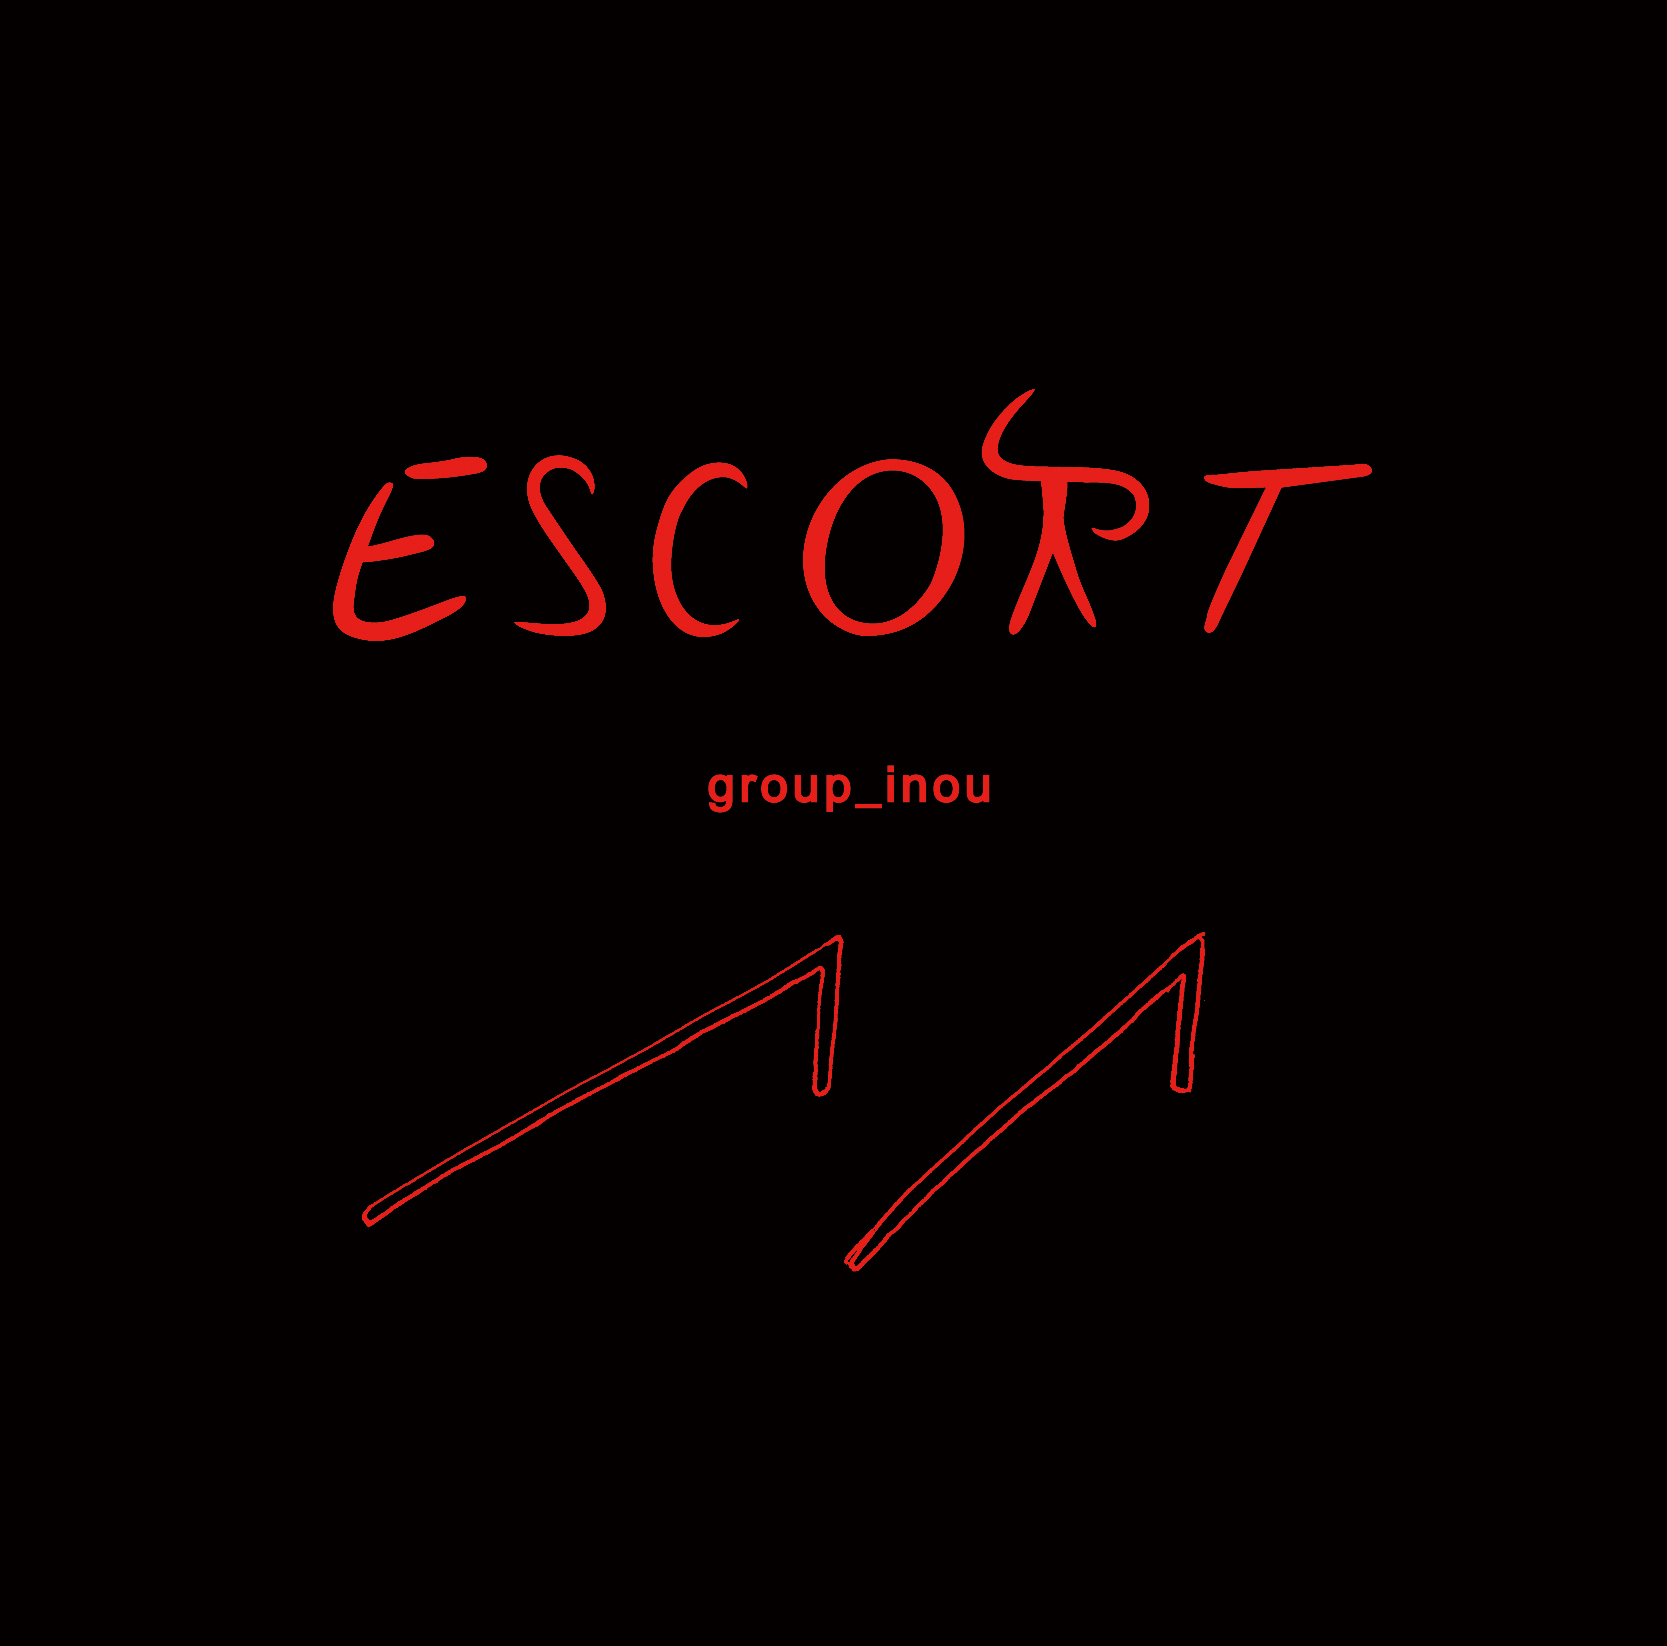 group_inou	ESCORT